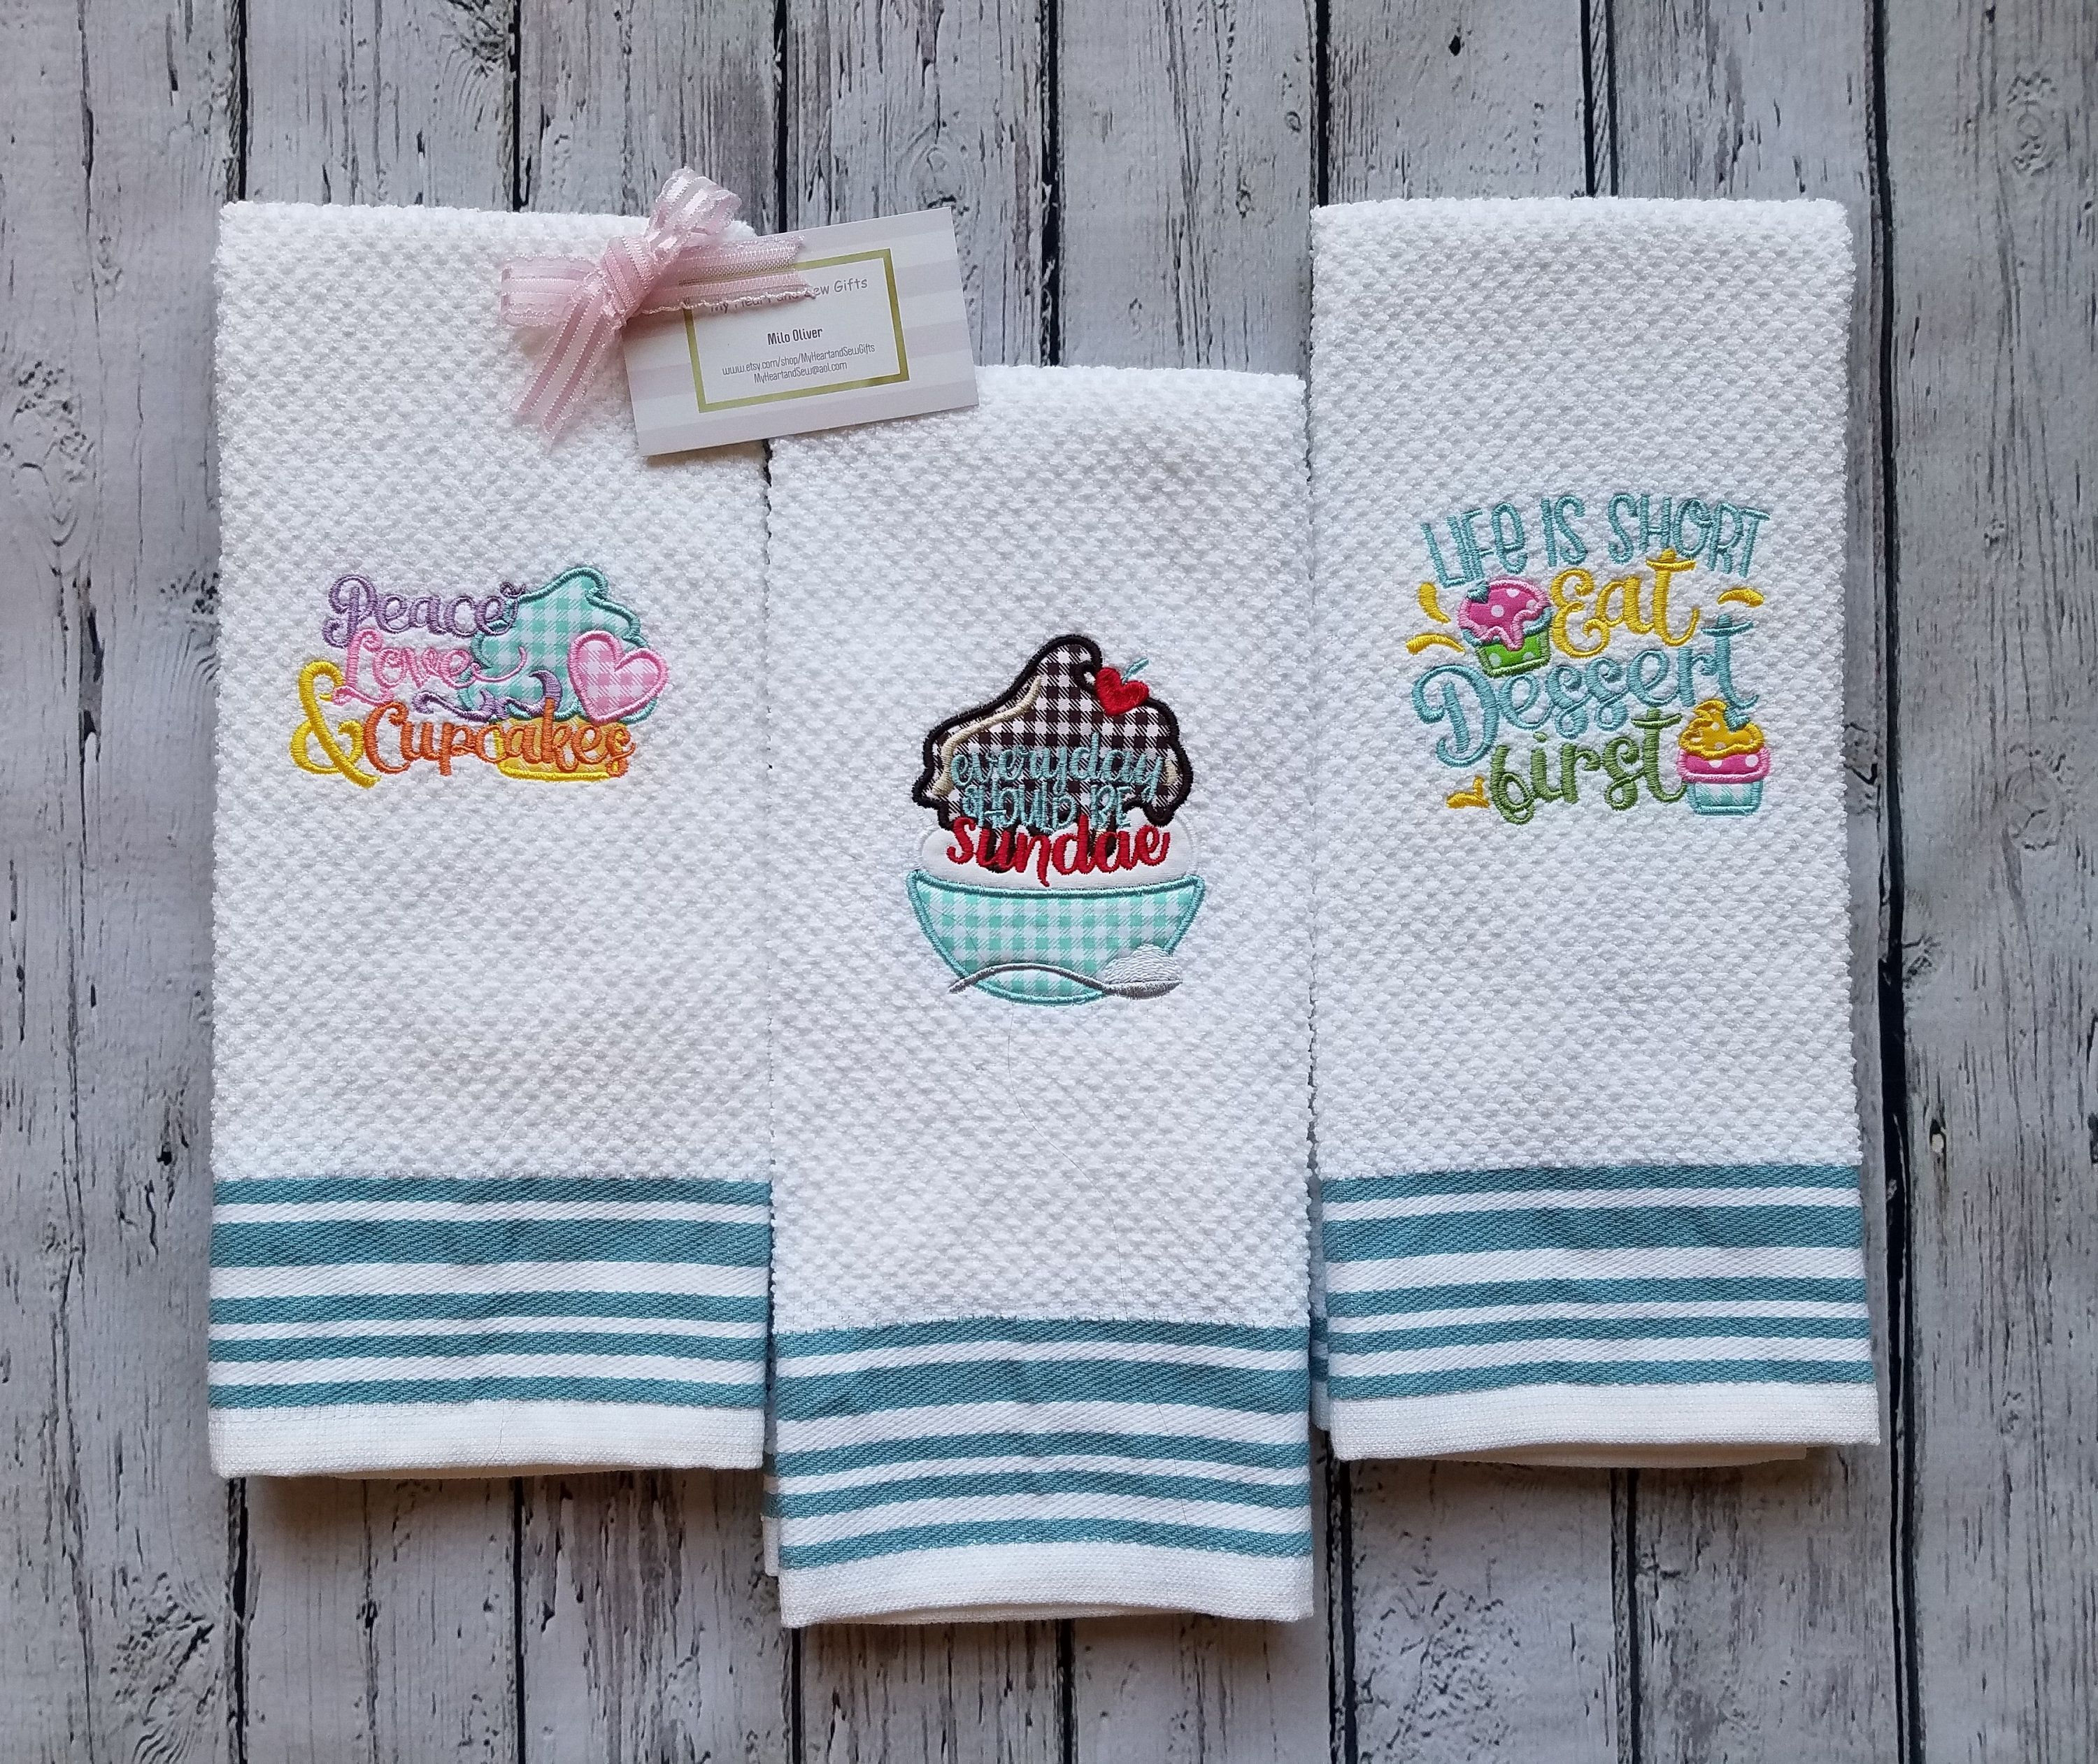 Teal Striped Kitchen Towels With Funny Dessert Sayings Etsy Etsy Personalized Key Fob Teal